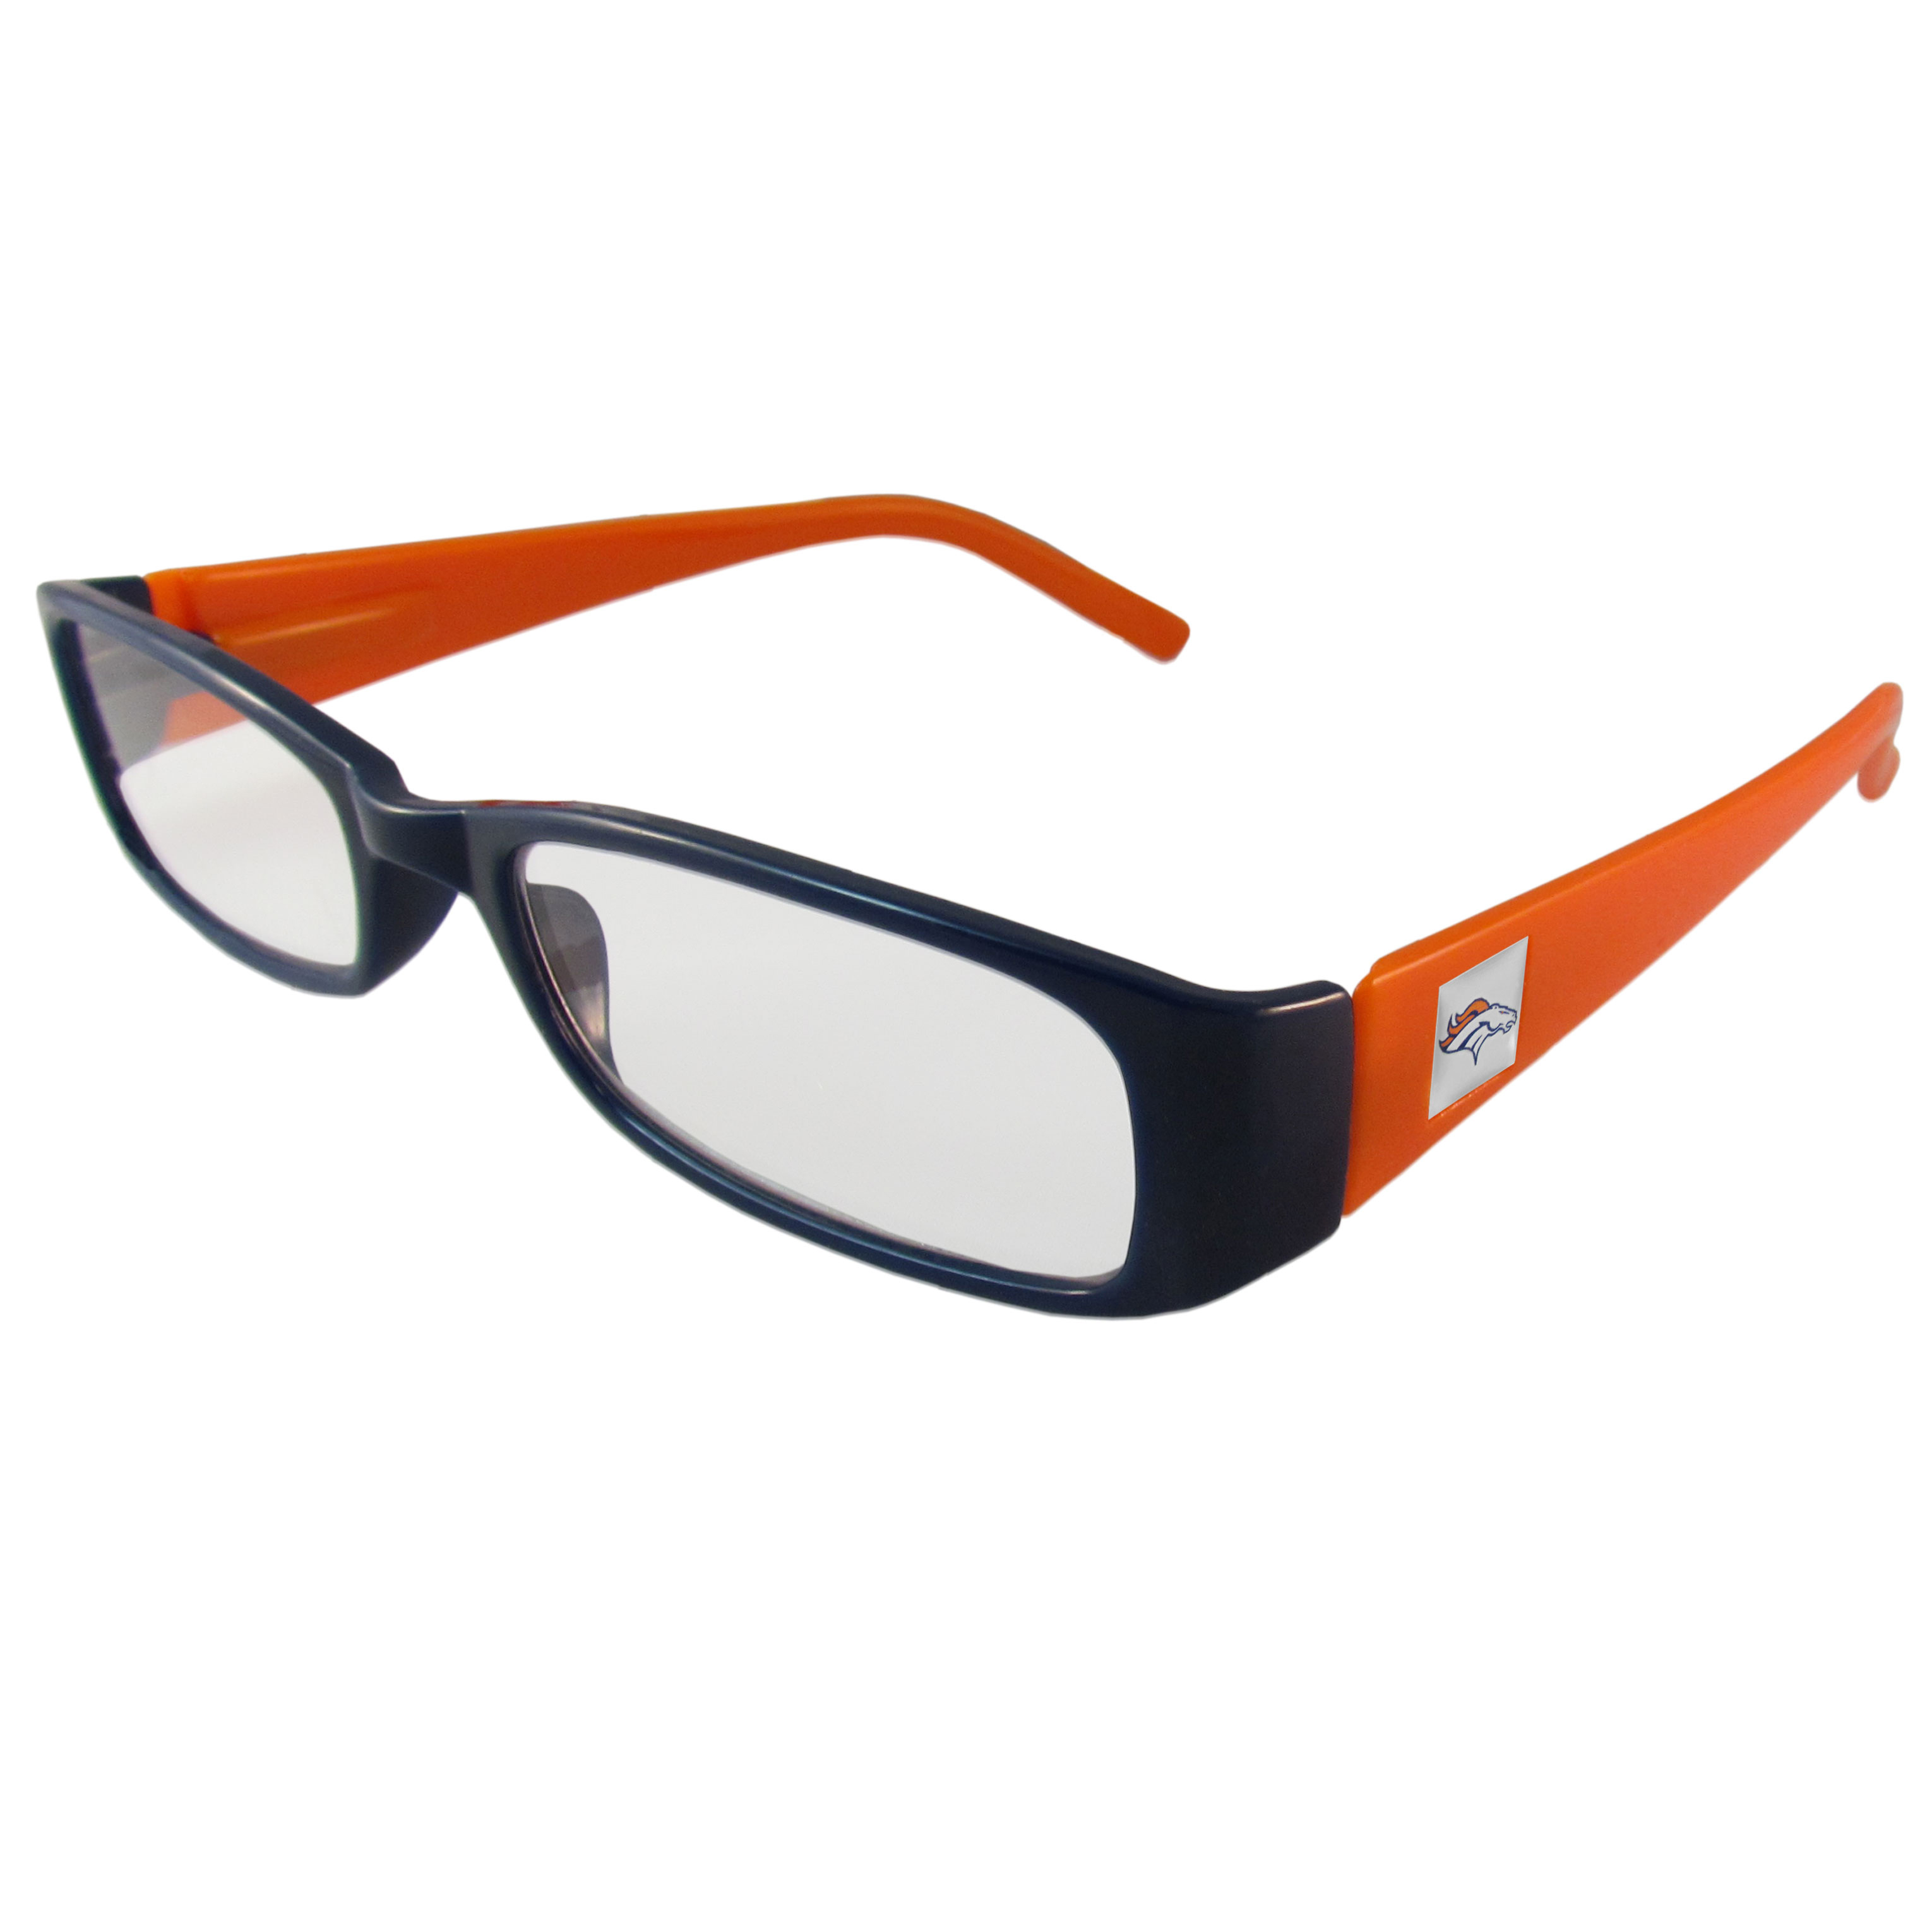 Denver Broncos Reading Glasses +1.25 - Our Denver Broncos reading glasses are 5.25 inches wide and feature the team logo on each arm. Magnification Power 1.25